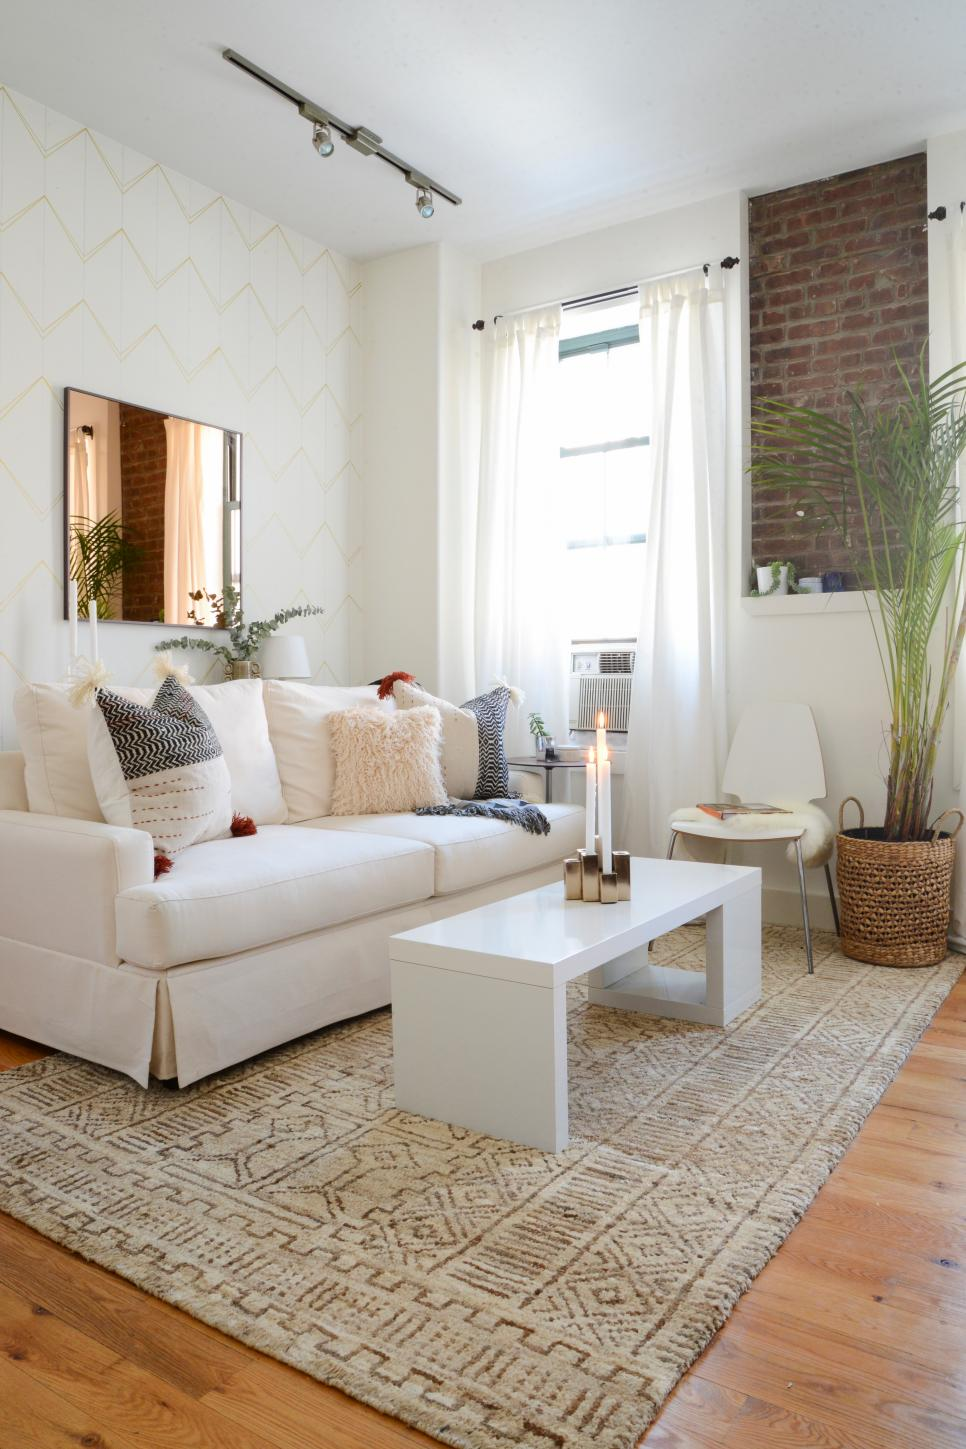 White Living Room With Cream Sofa, White Coffee Table and Tan Rug